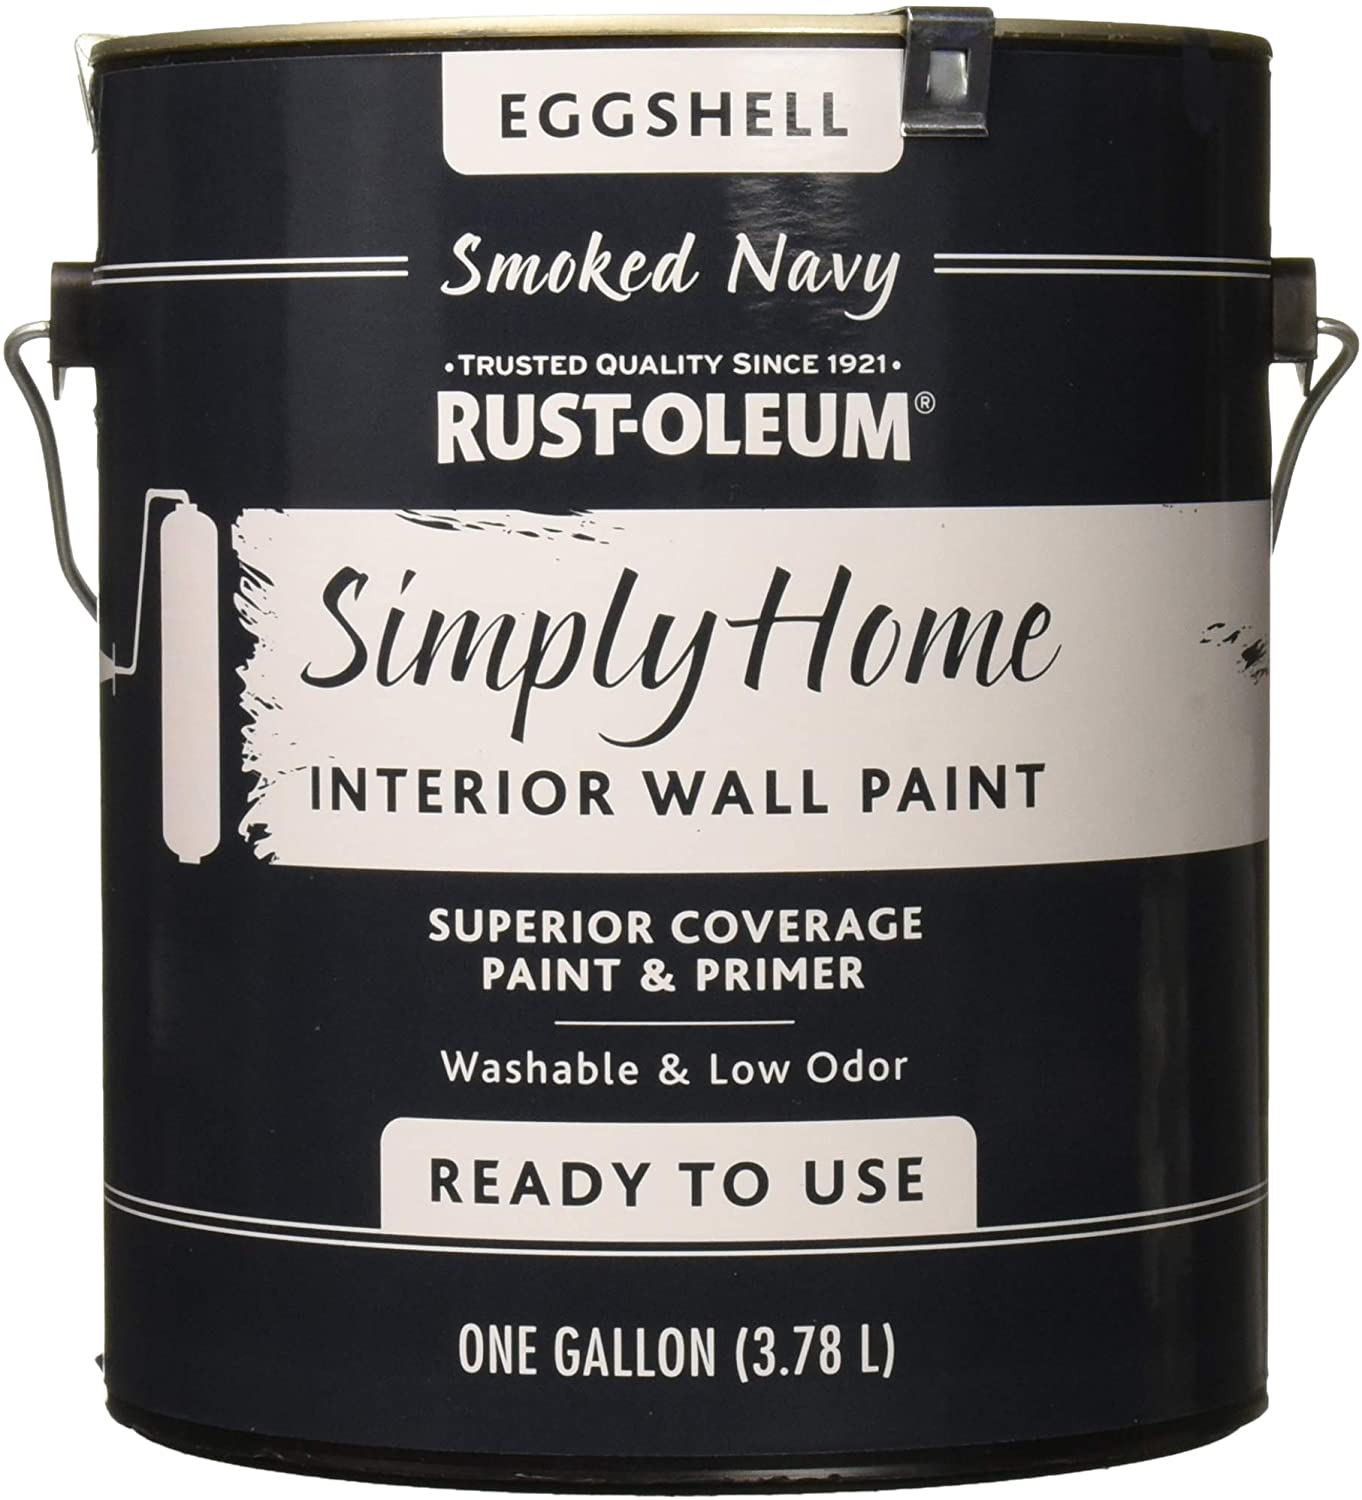 Top 7 Best Paint For Kitchen Backsplash In 2021